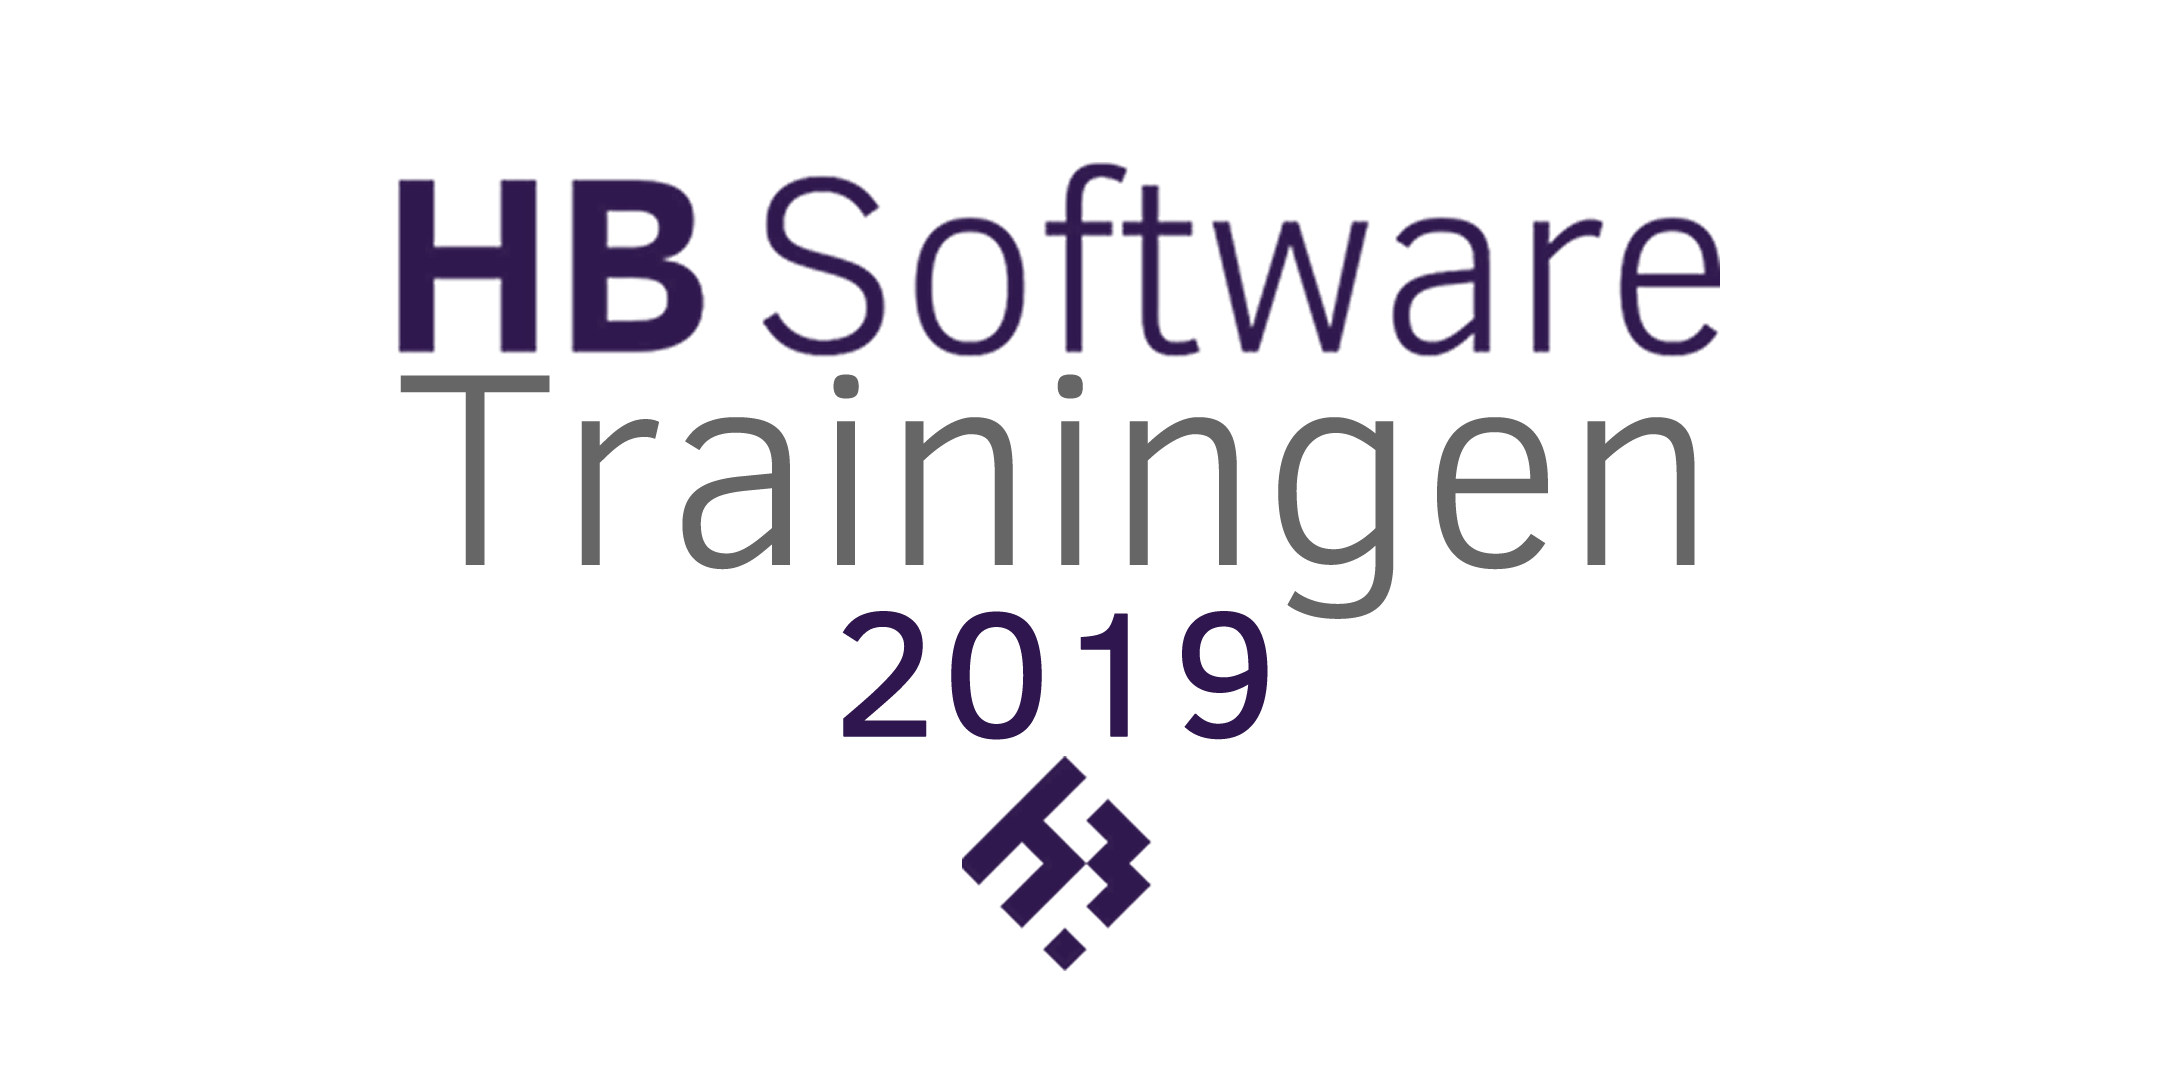 HB Software trainingen 2019